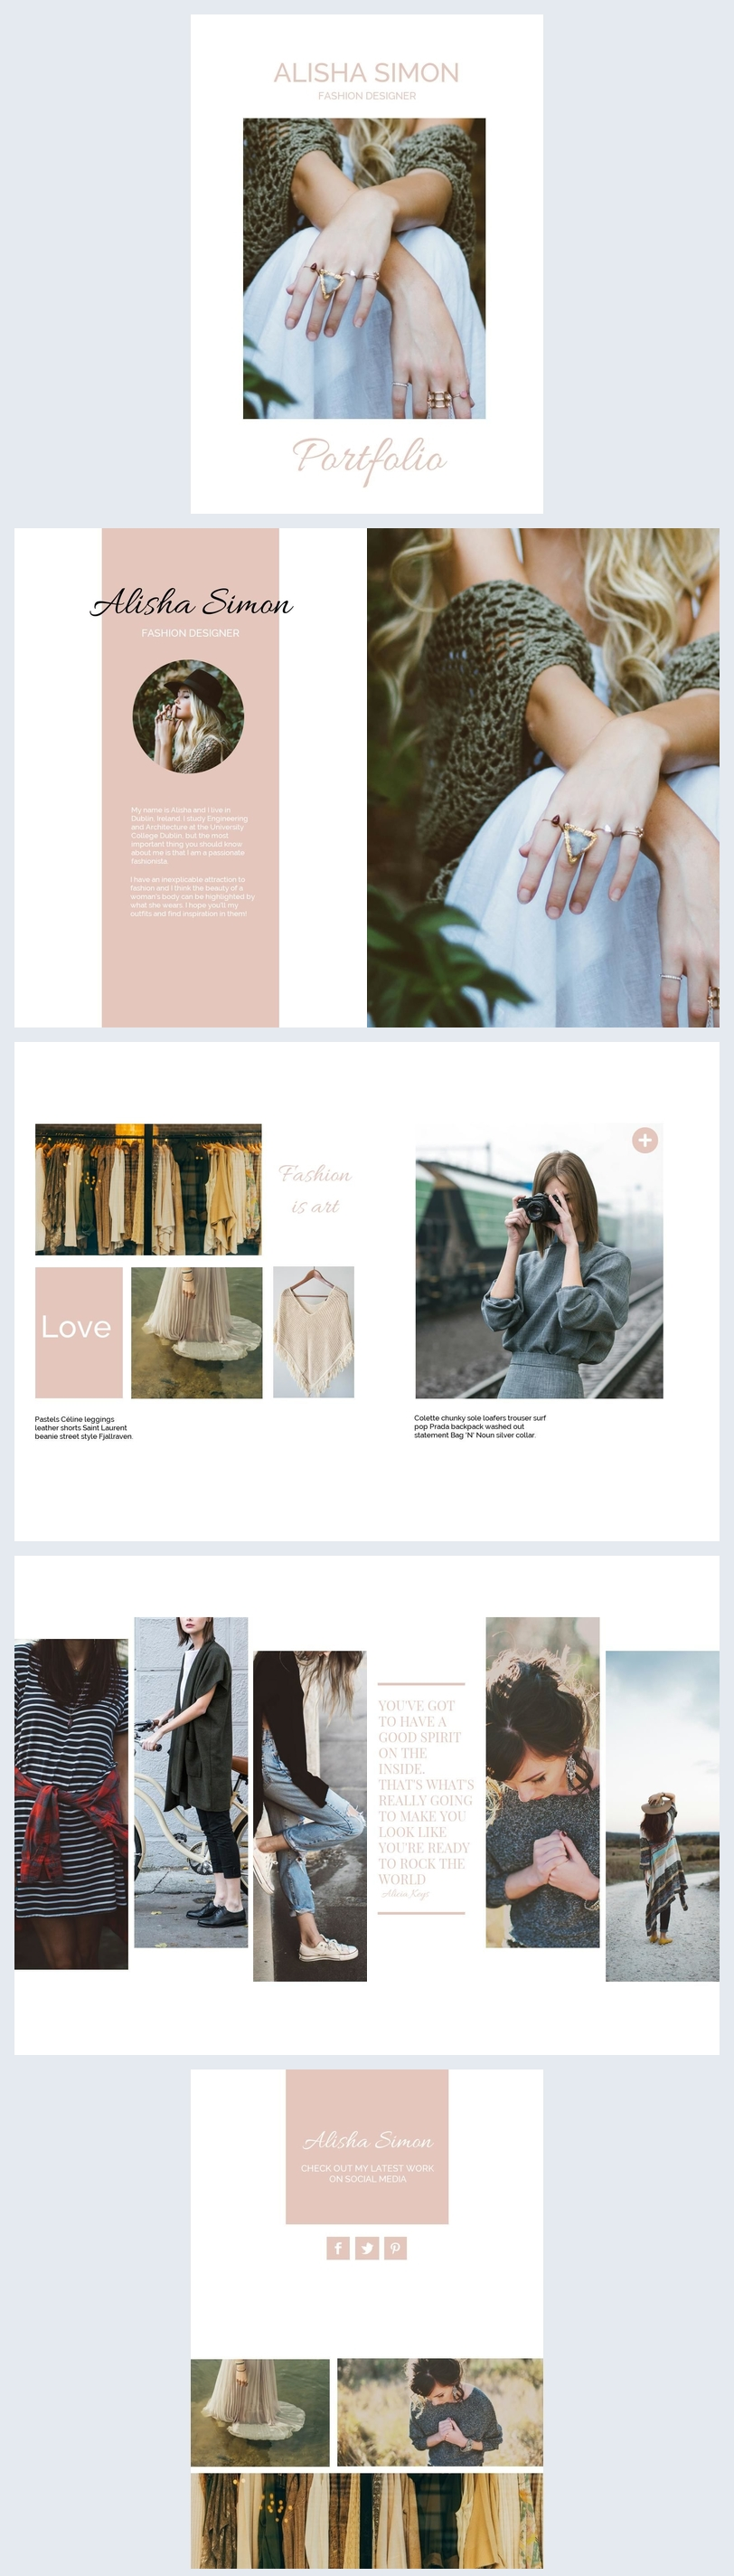 Women S Fashion Portfolio Templates Design Flipsnack